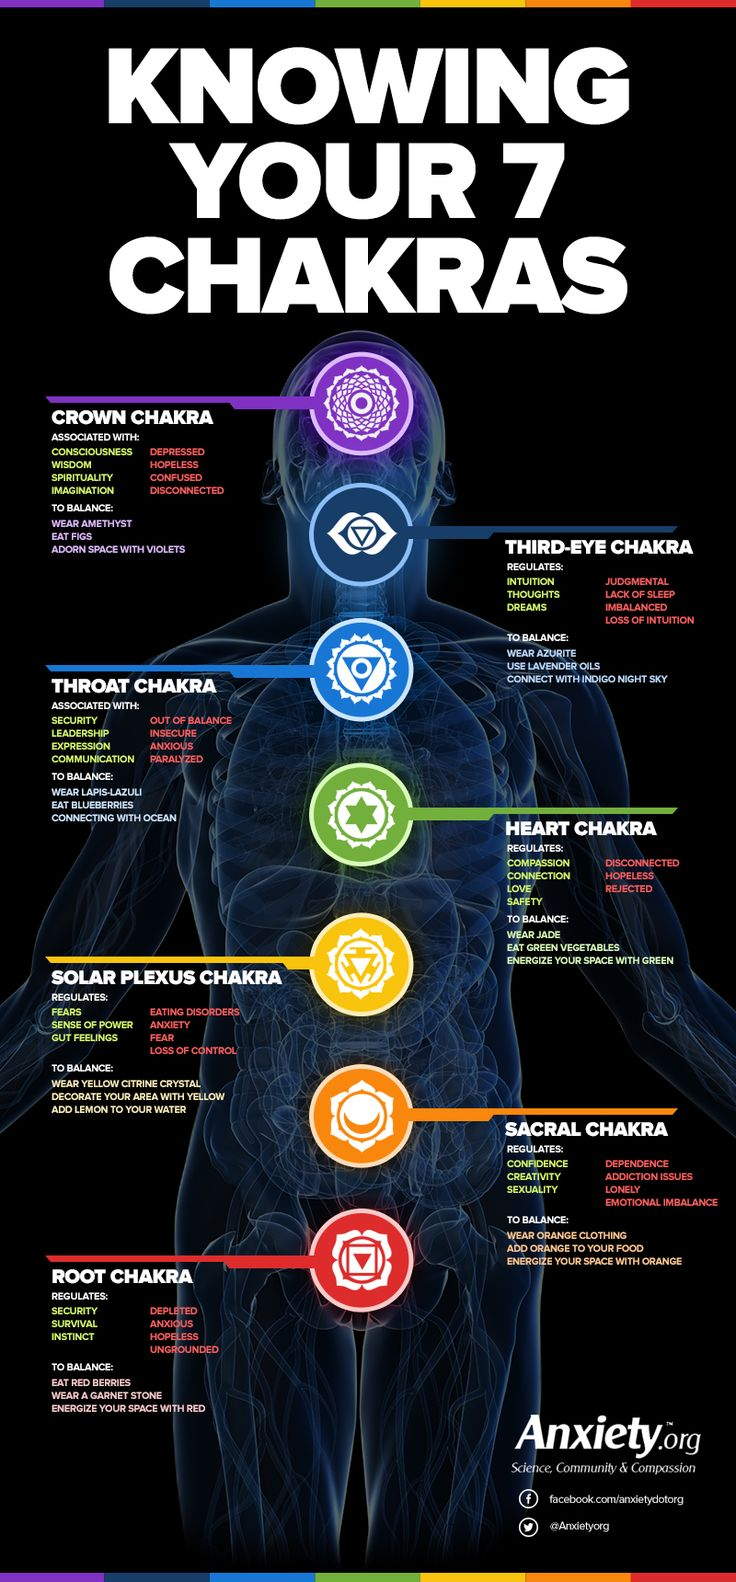 Knowing the 7 Chakras #health #HealthyChoice | #lifeadvancer | @lifeadvancer